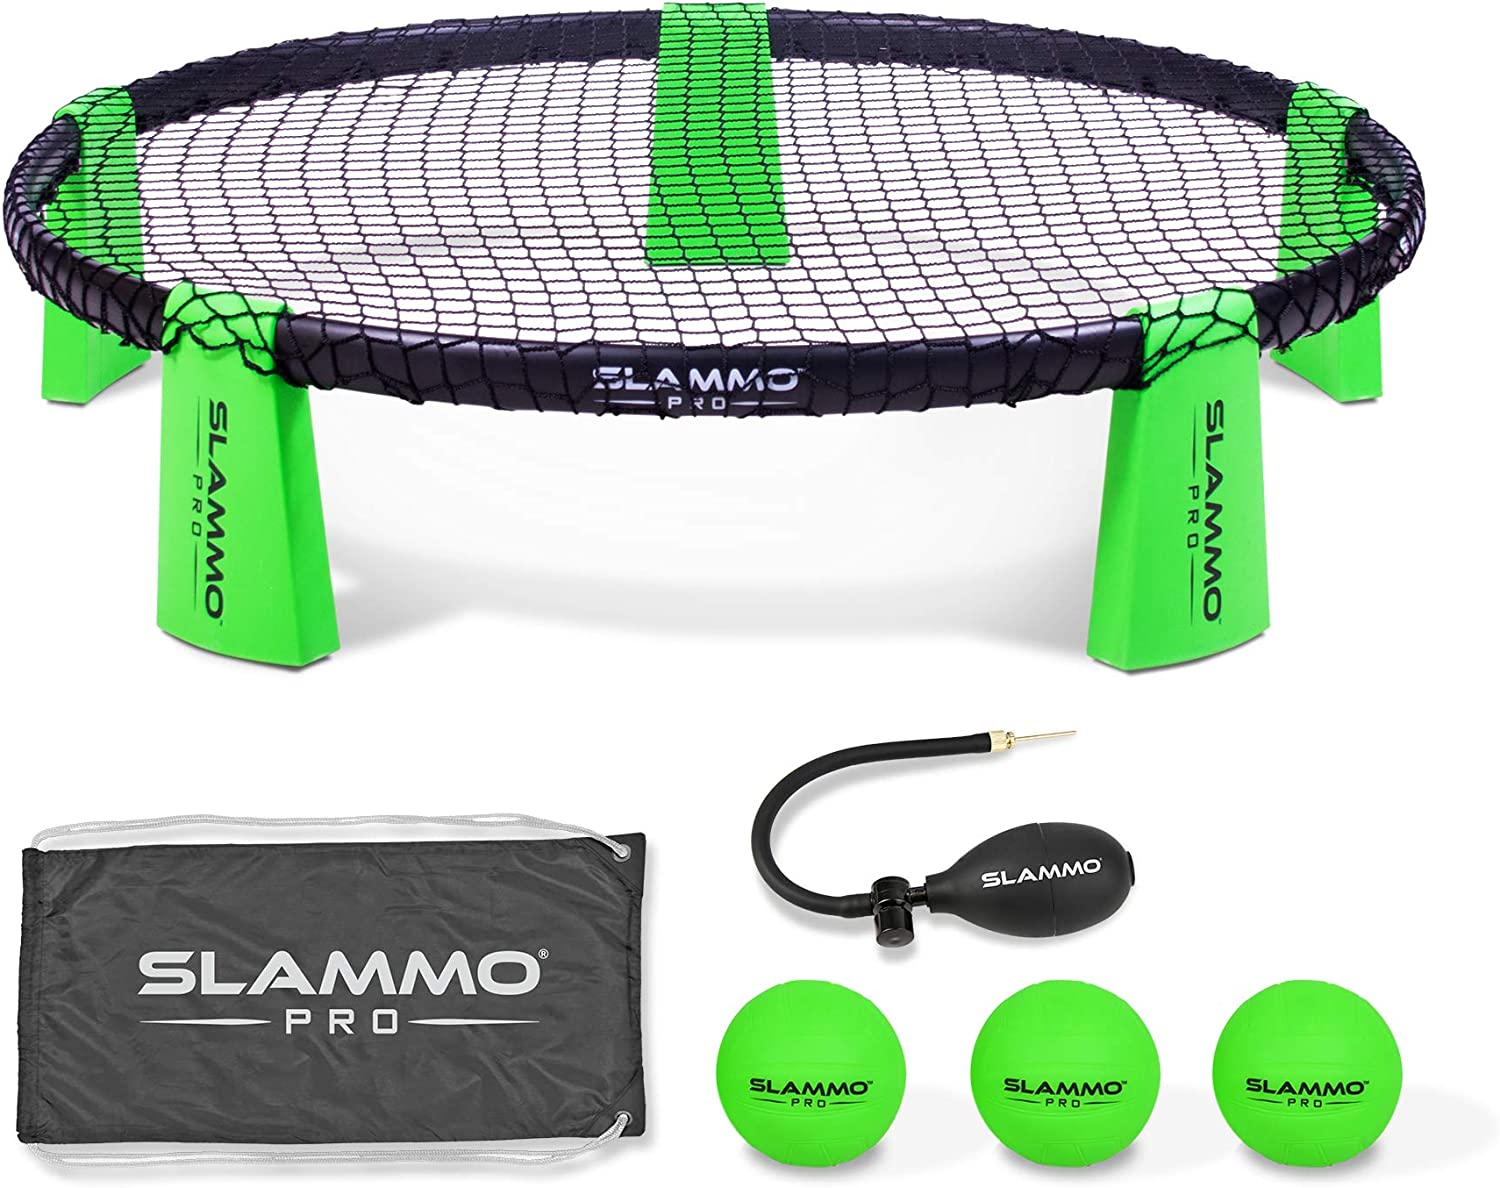 Gosports Slammo Pro Game Set New And Improved Pro Set With 3 Pro Balls Pump And Carrying Case Outdoor Games Activities Amazon Canada